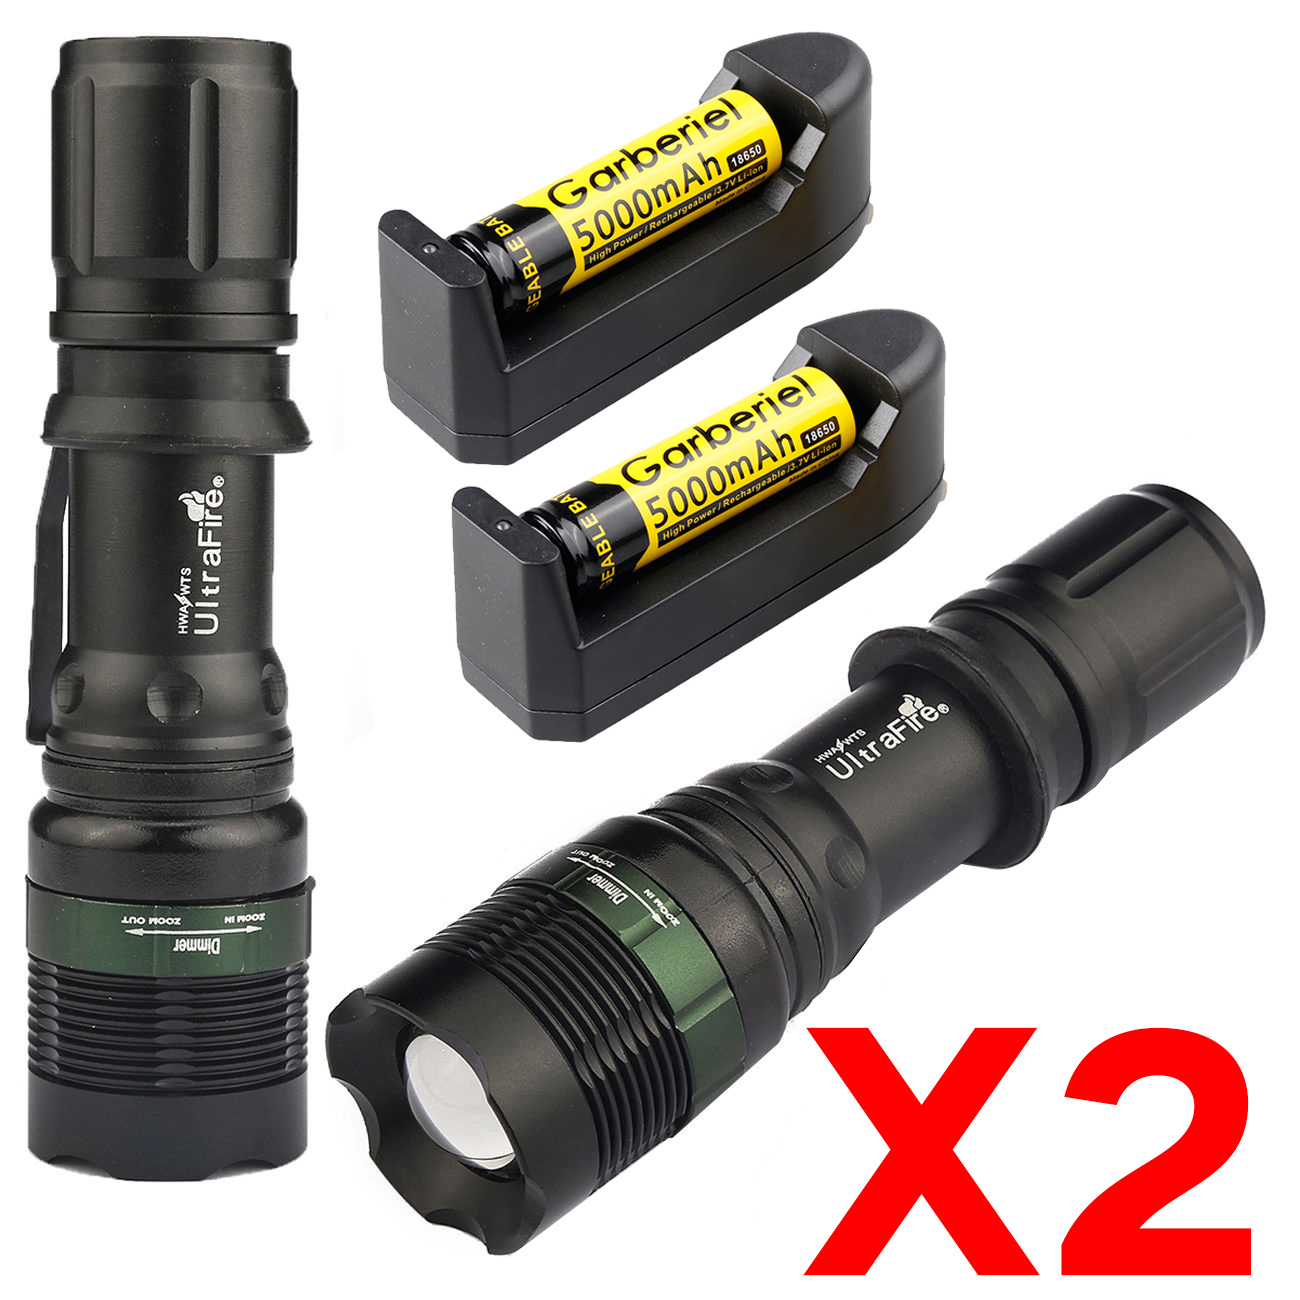 Military 6 Modes 900000LM Tactical Rechargeable Headlamp 18650 High Power Torch